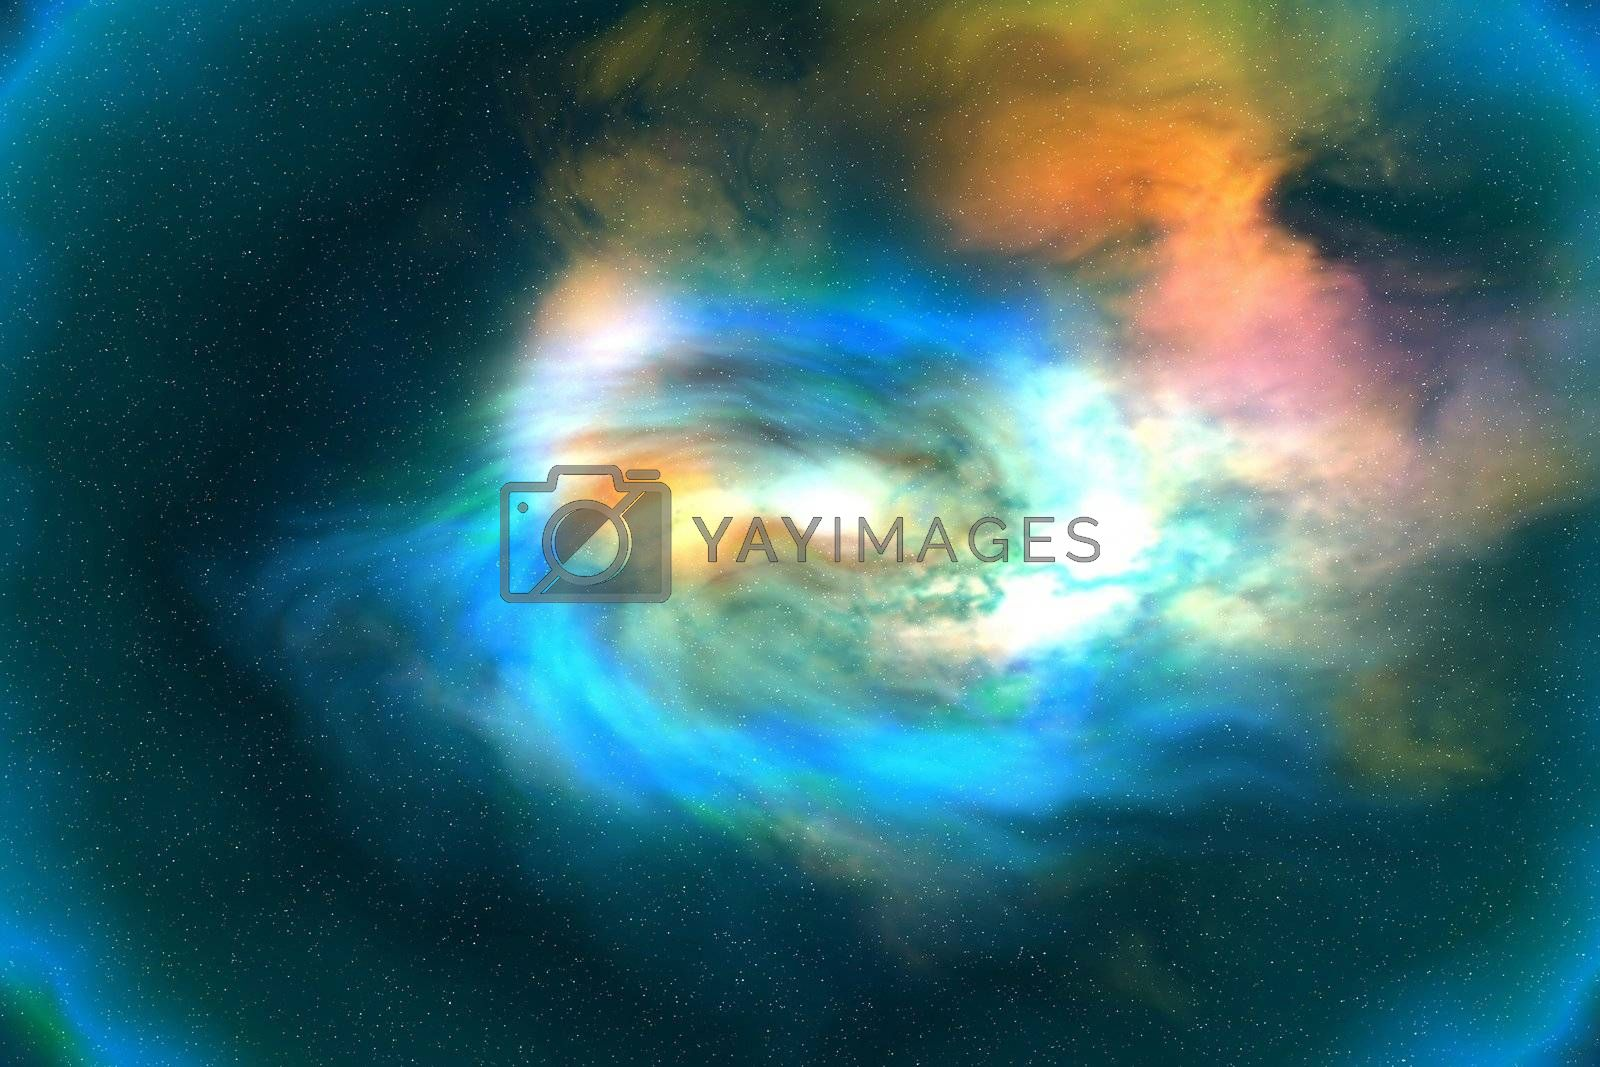 Royalty free image of IRRESISTIBLE FORCE by Catmando